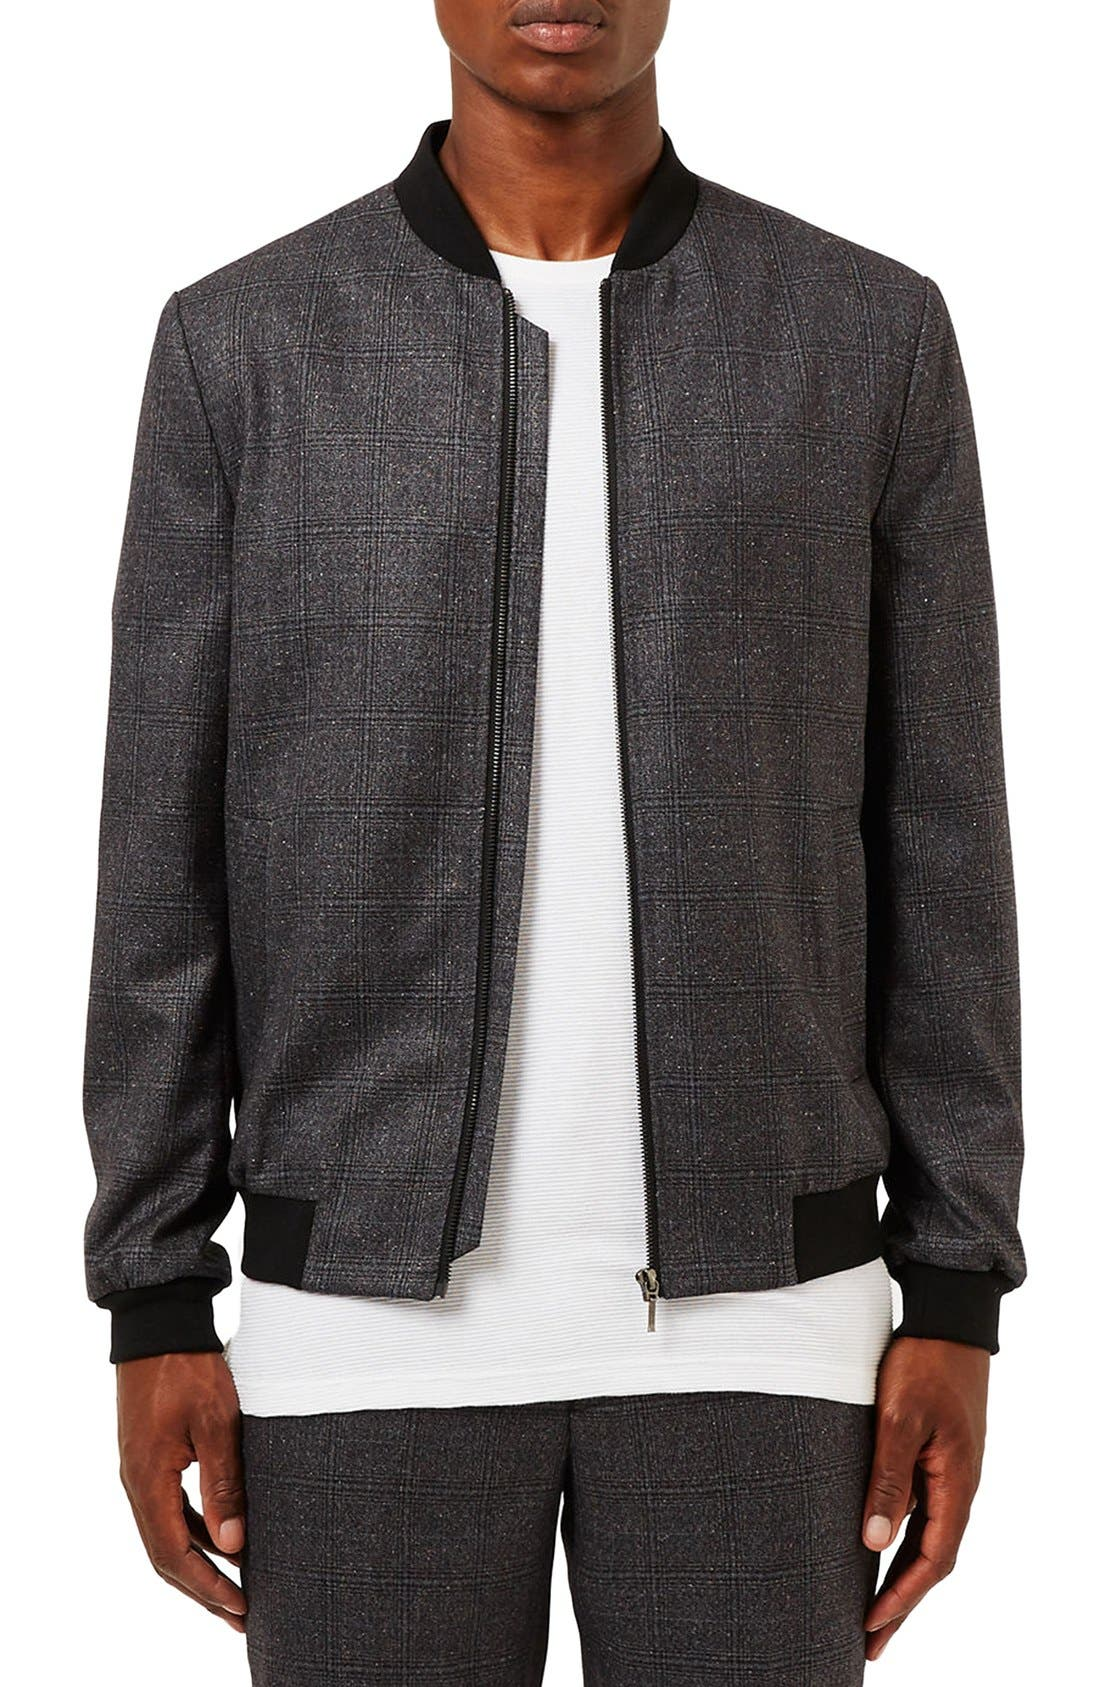 Alternate Image 1 Selected - Topman Plaid Bomber Jacket